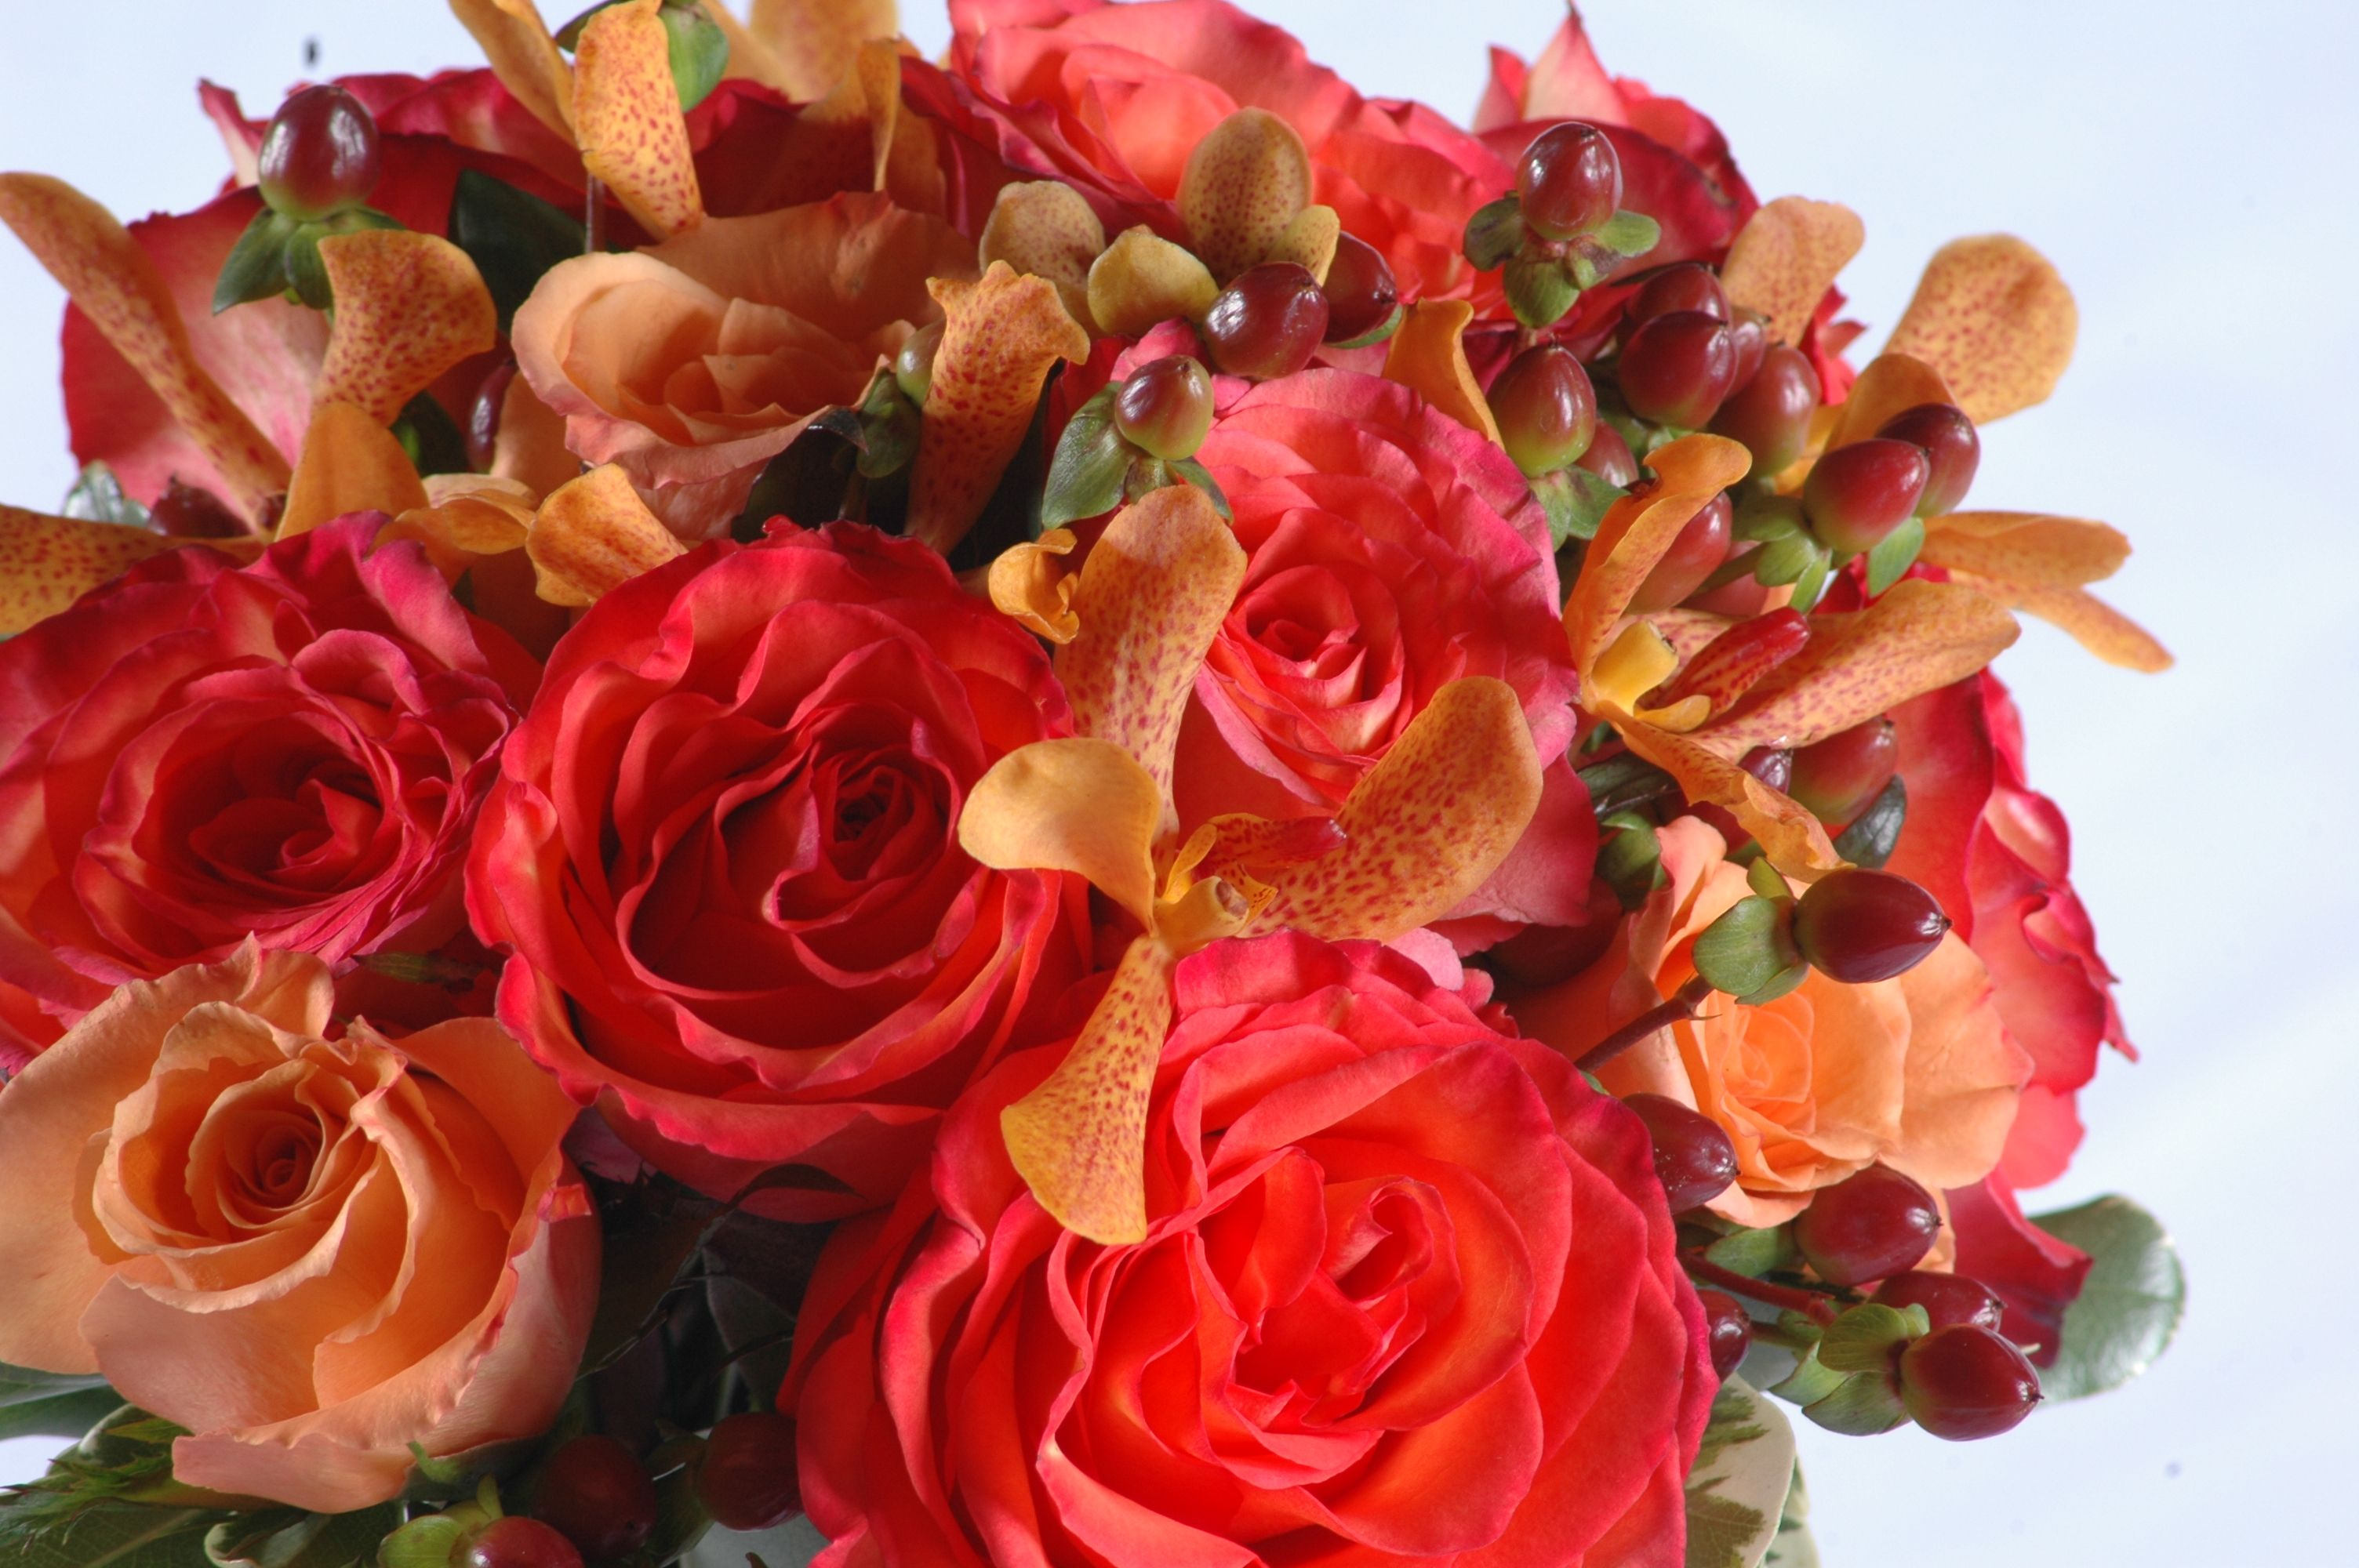 Of Roses Orchids And Berries Hy Vee Dance Flowers Pinter